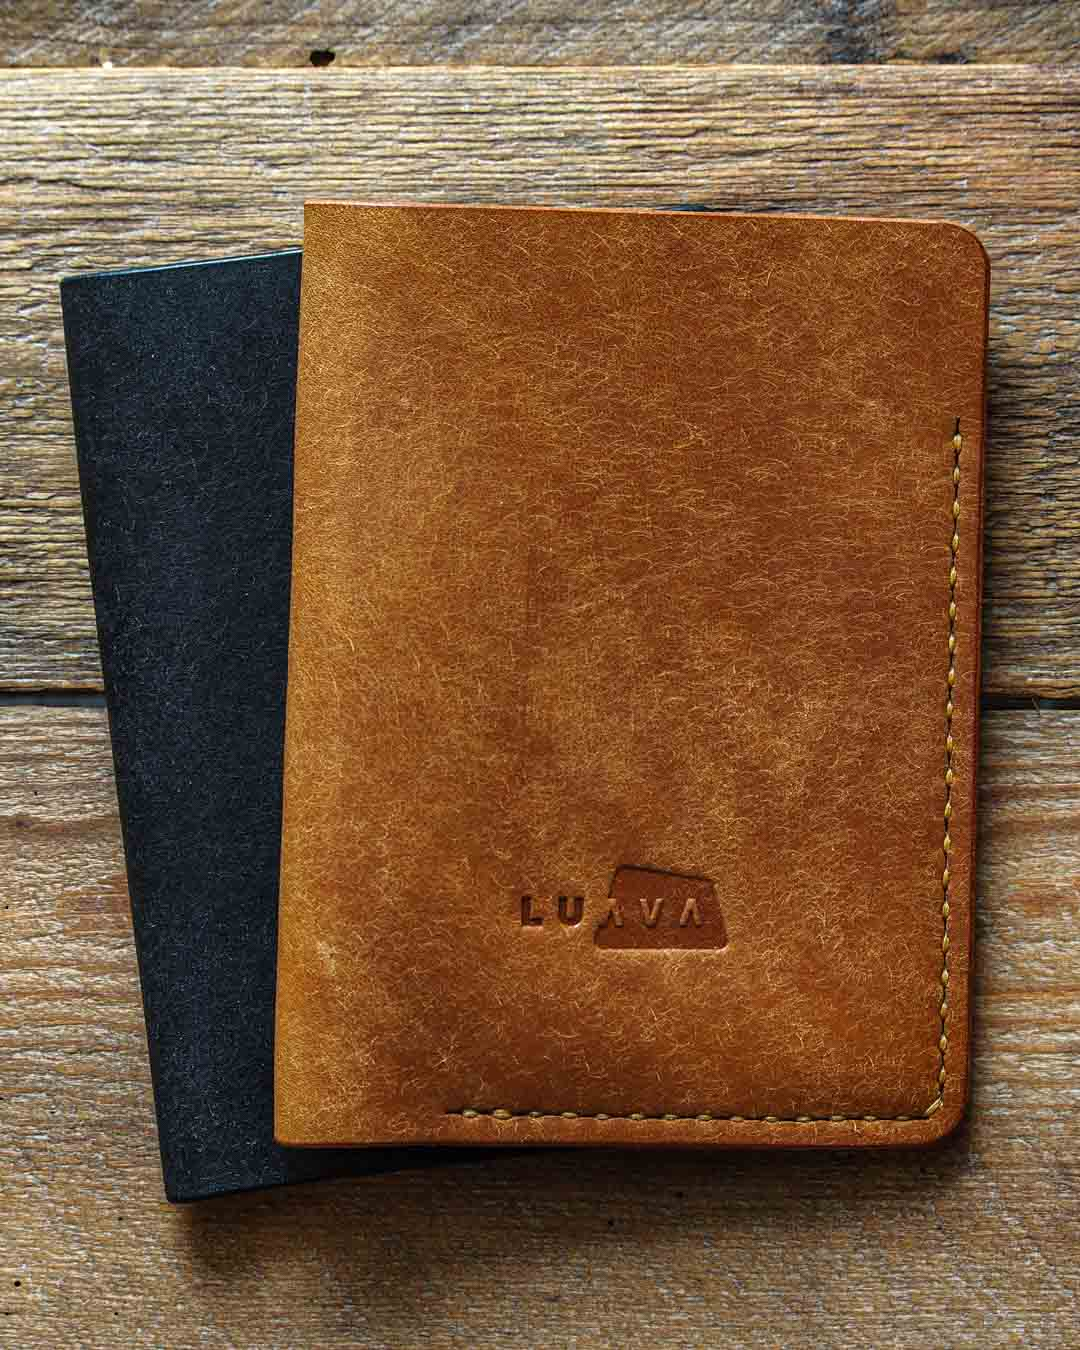 Luava leather passport cover pueblo black cognac